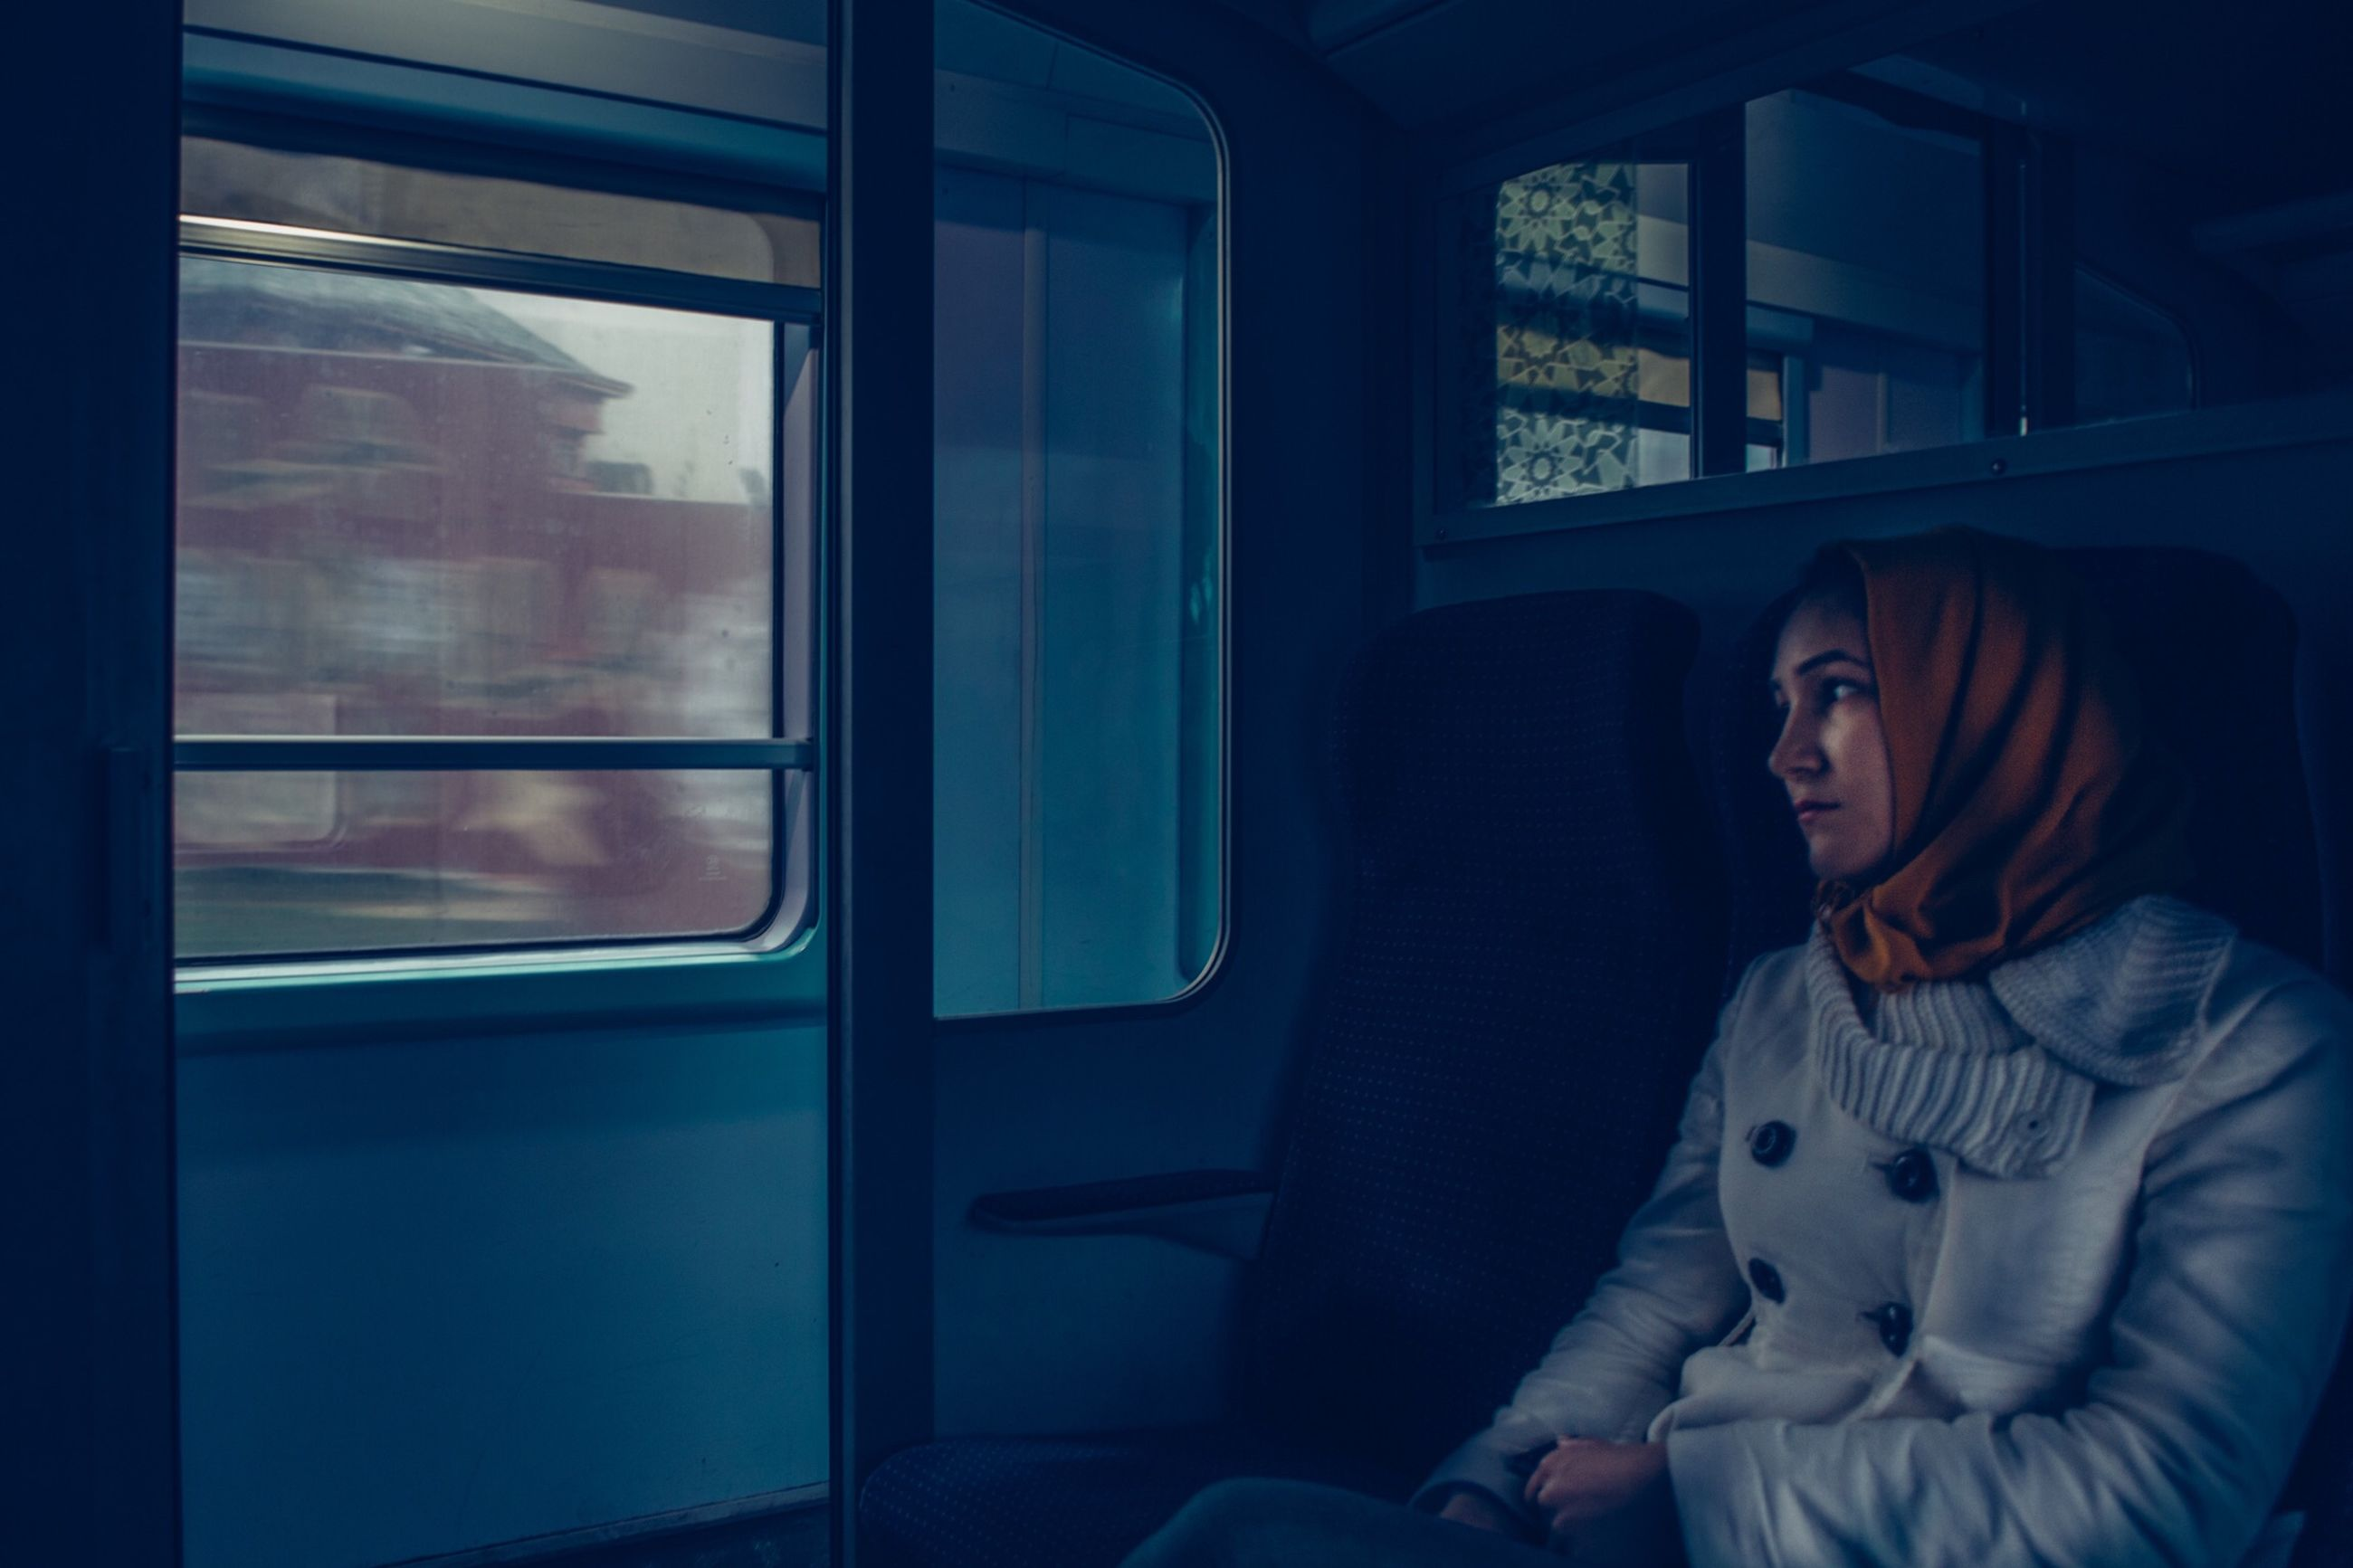 window, real people, transparent, train, mode of transportation, glass - material, rail transportation, train - vehicle, public transportation, transportation, travel, vehicle interior, women, one person, leisure activity, day, lifestyles, indoors, child